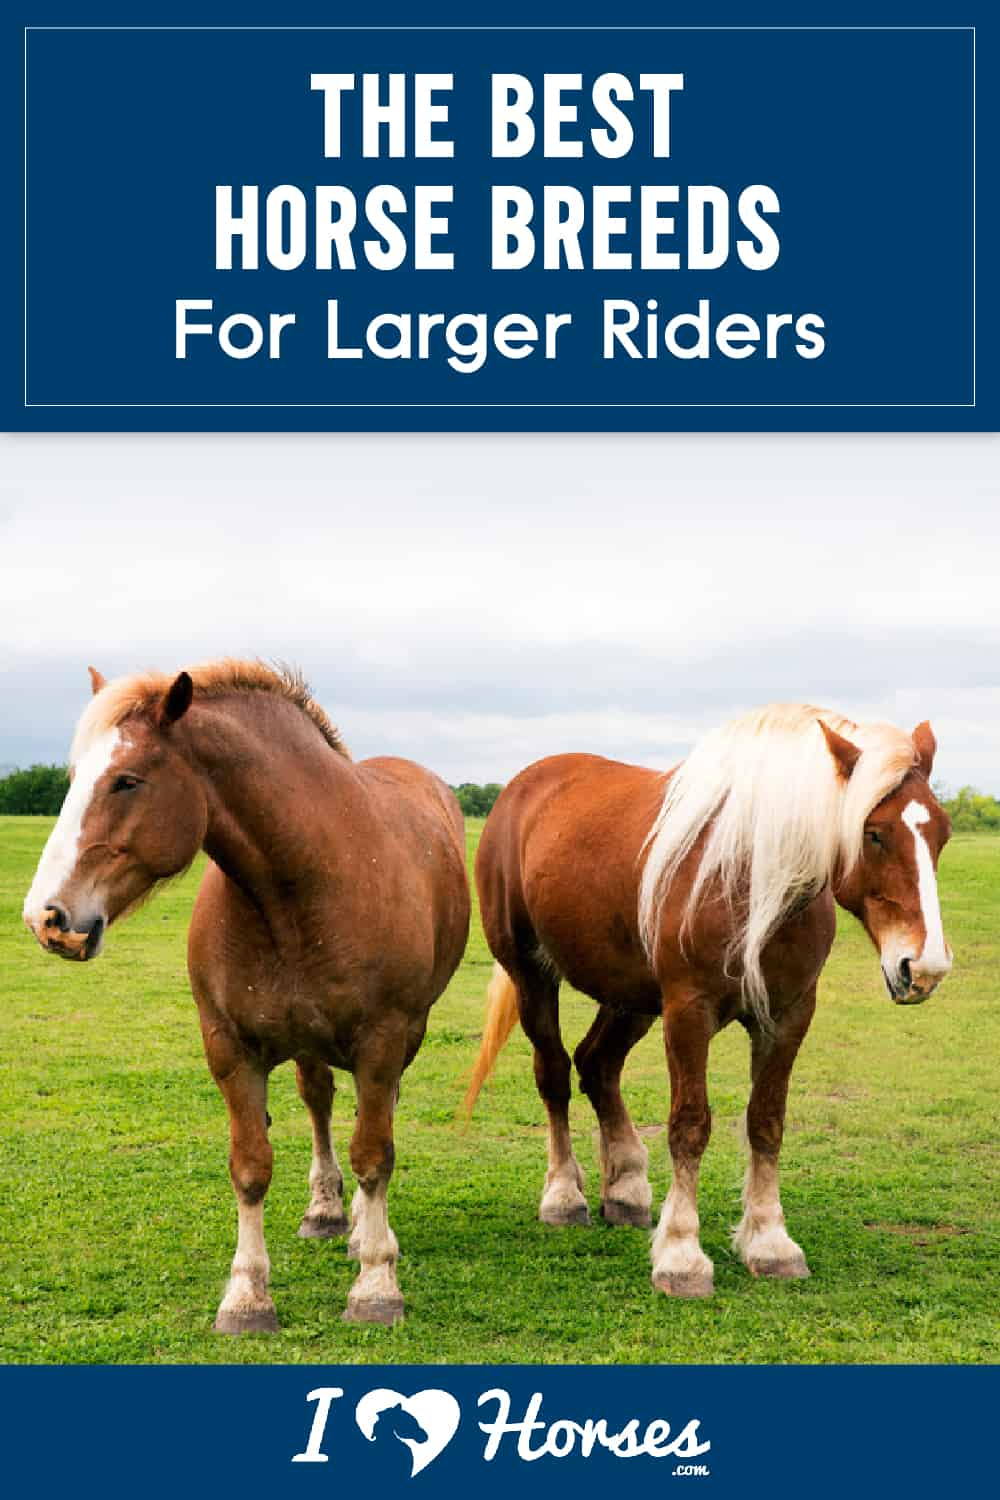 The Best Horse Breeds For Larger Riders